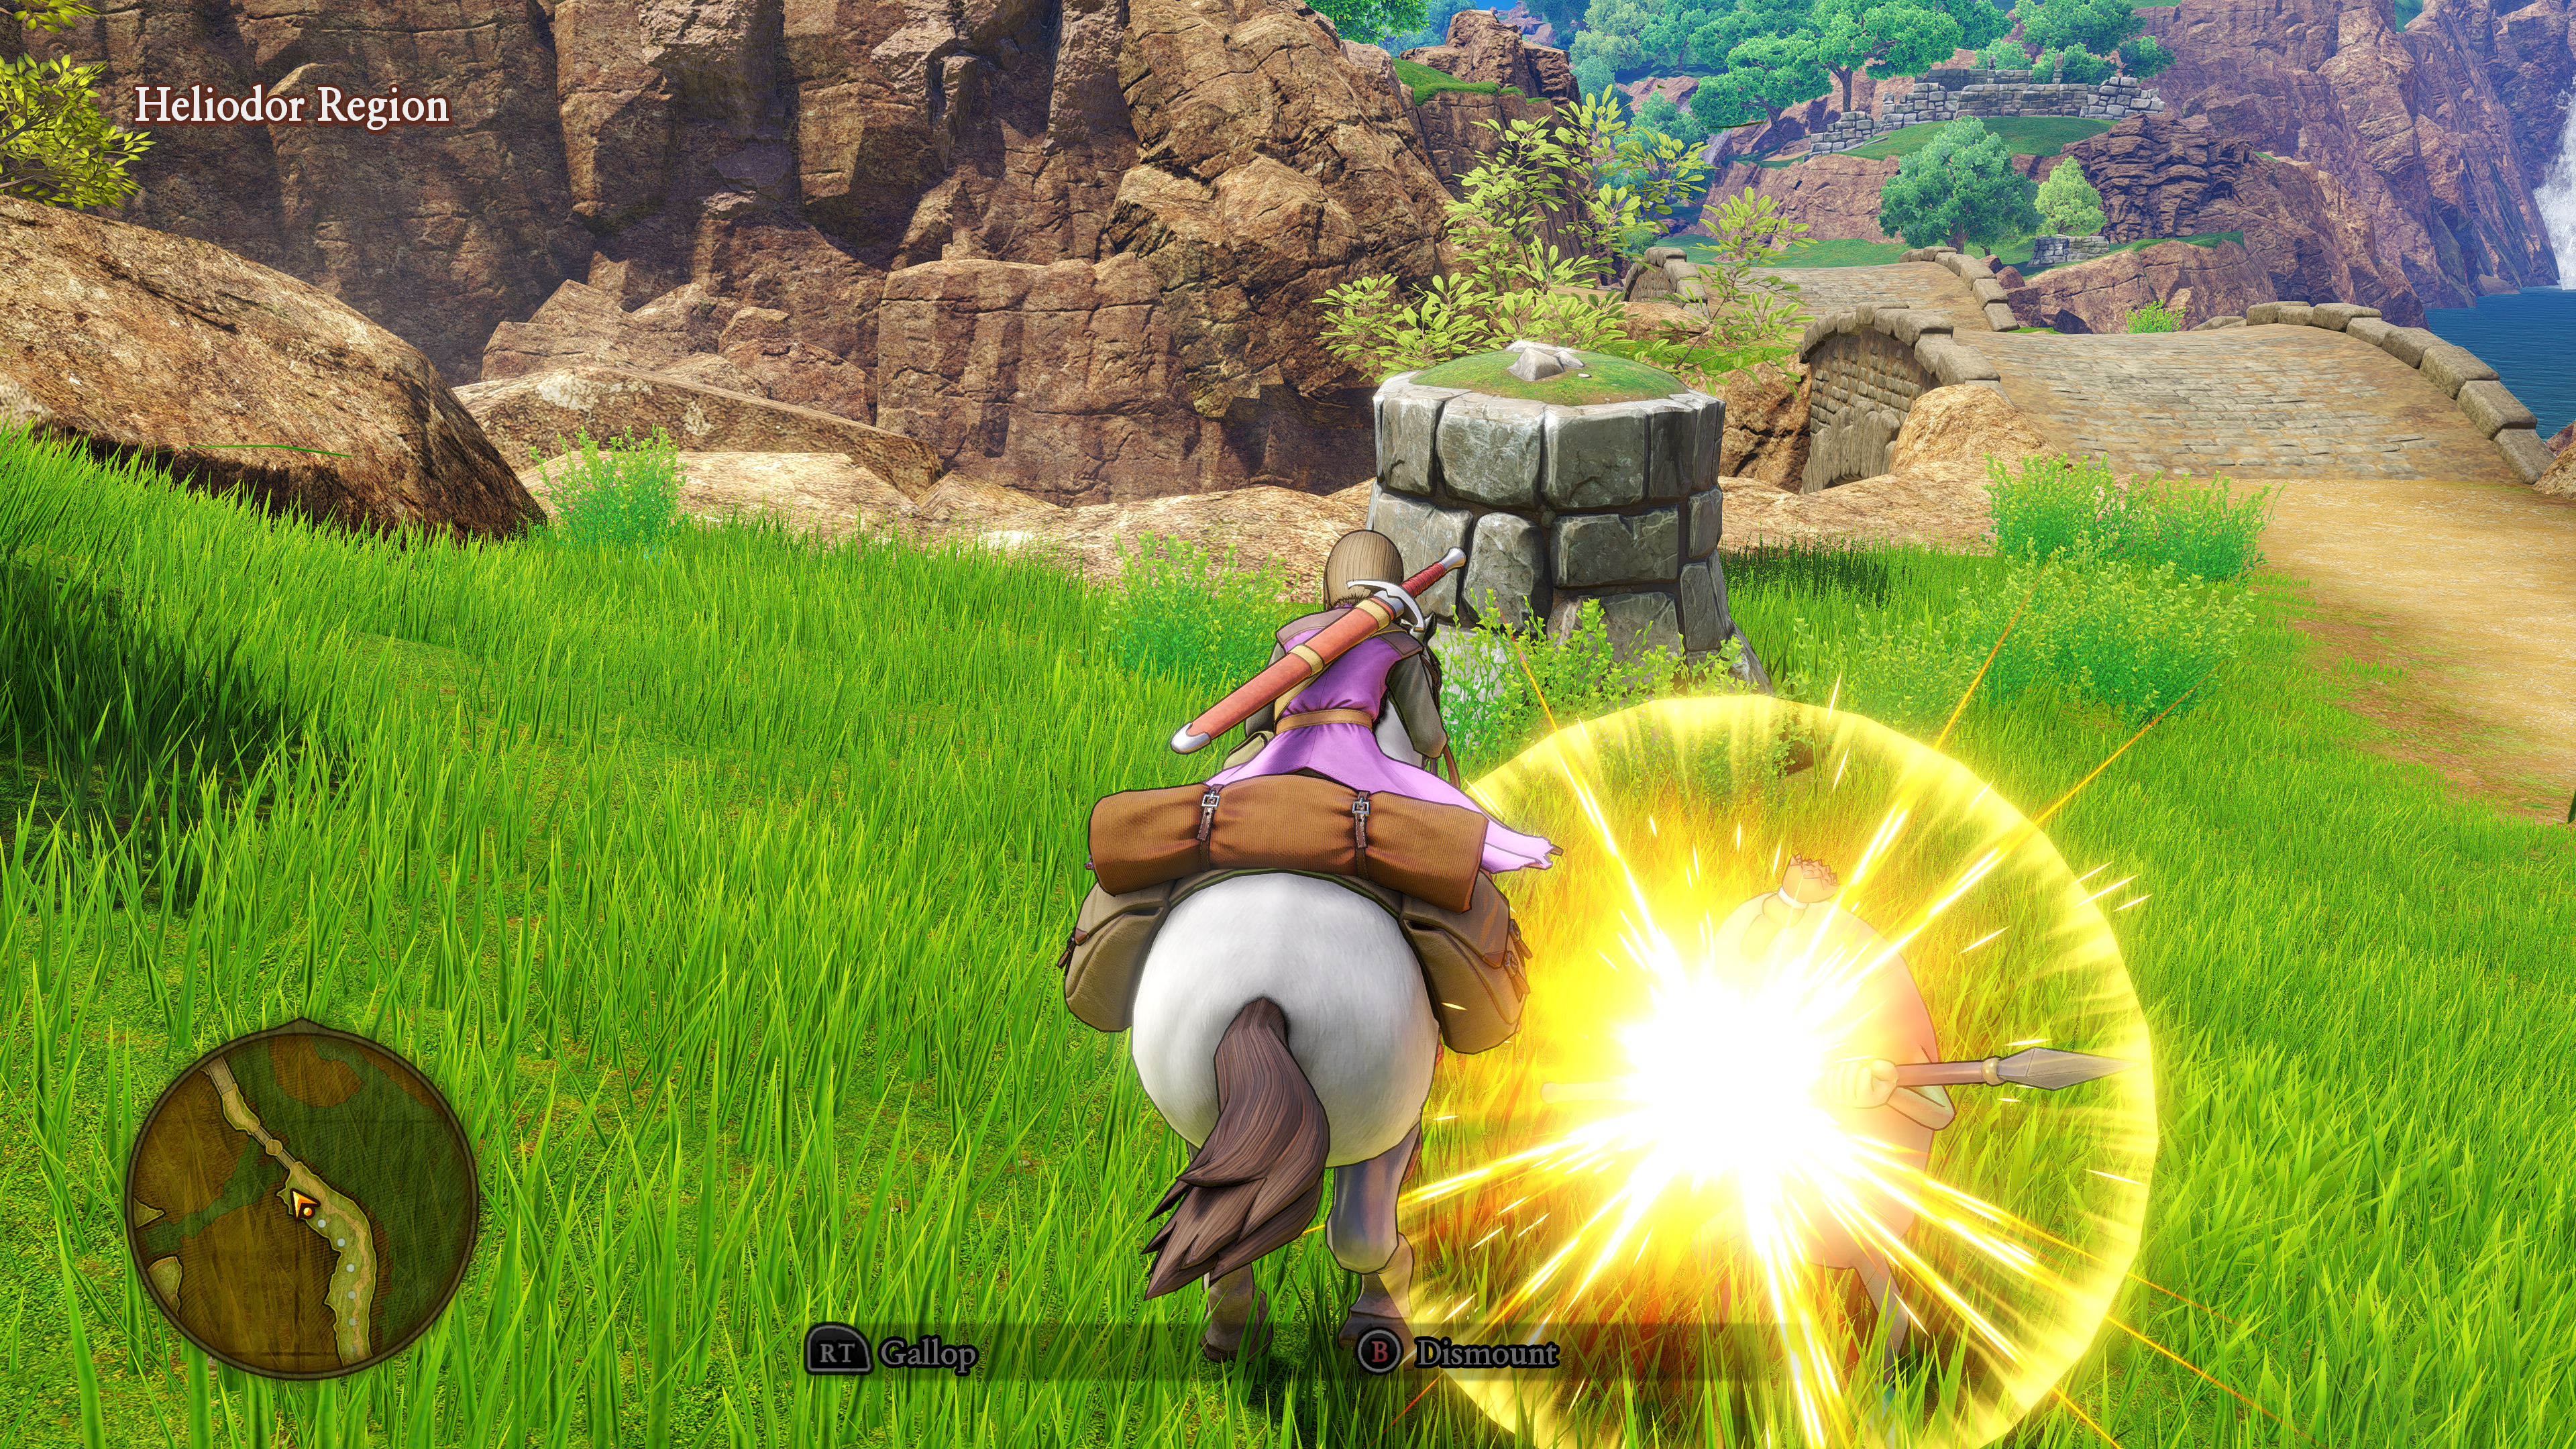 Dragon Quest XI: Echoes of an Elusive Age PC performance thread